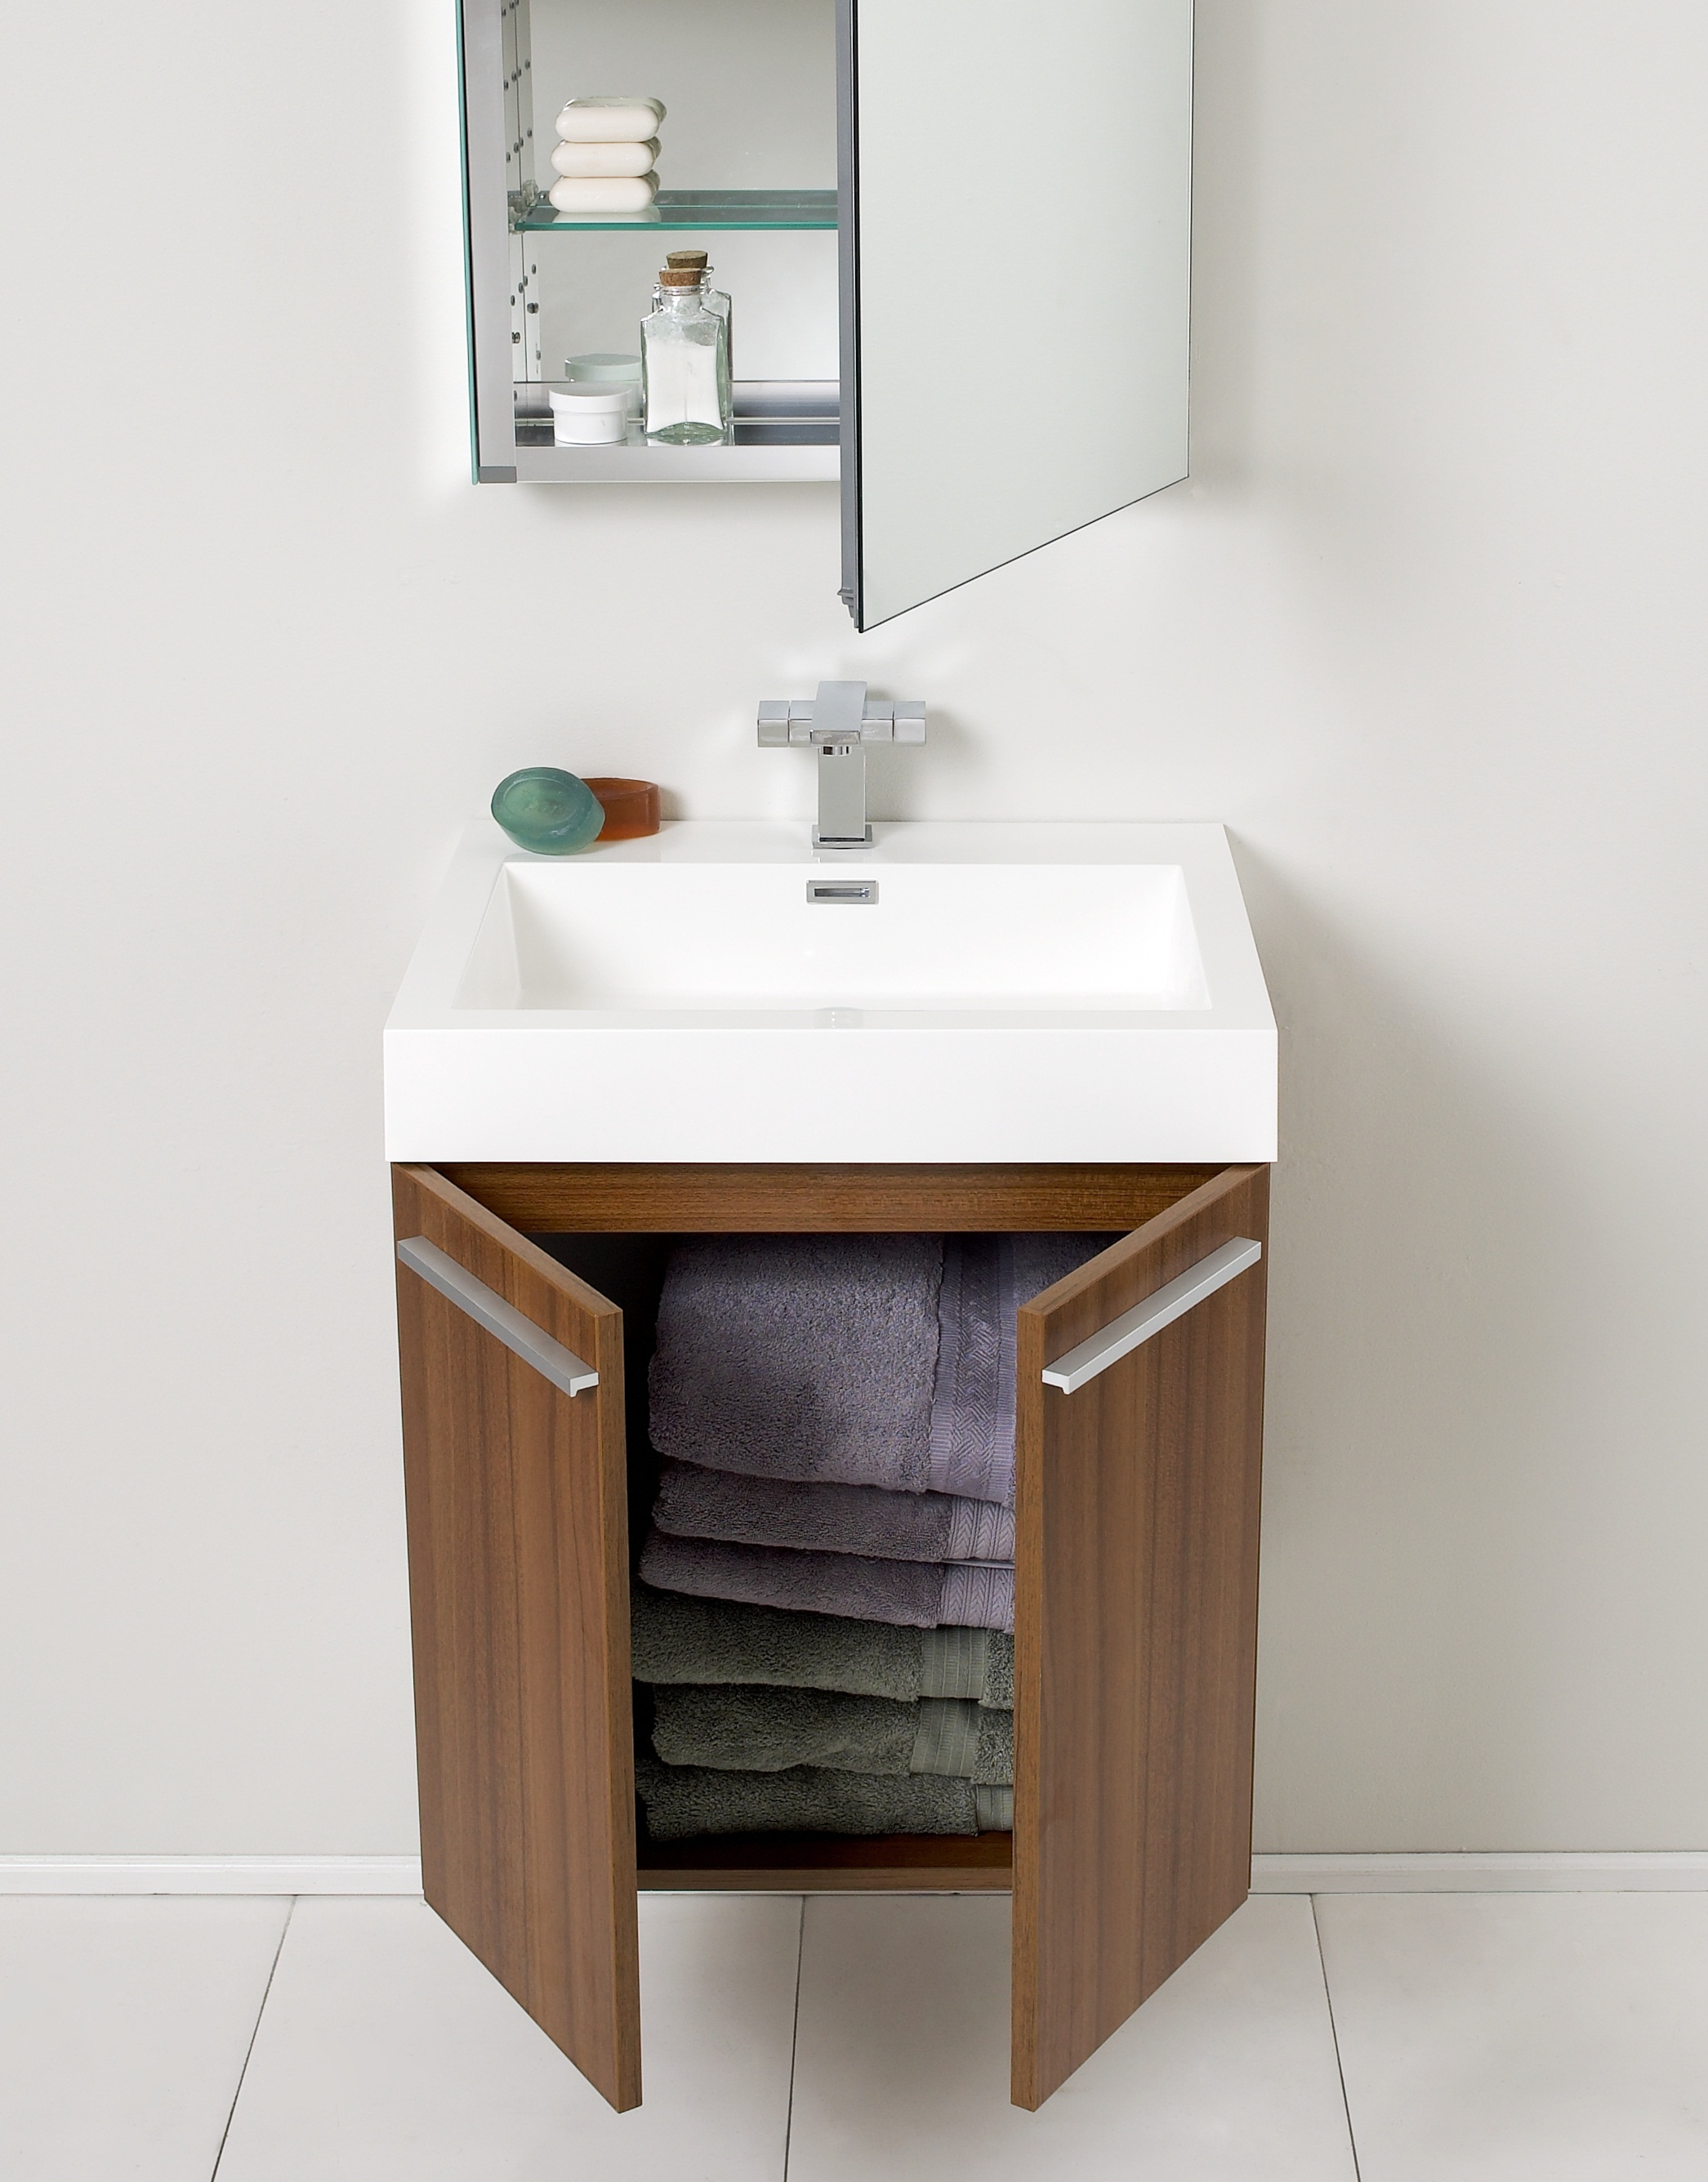 Small bathroom vanities for layouts lacking space eva furniture - Bathroom vanities small spaces decoration ...